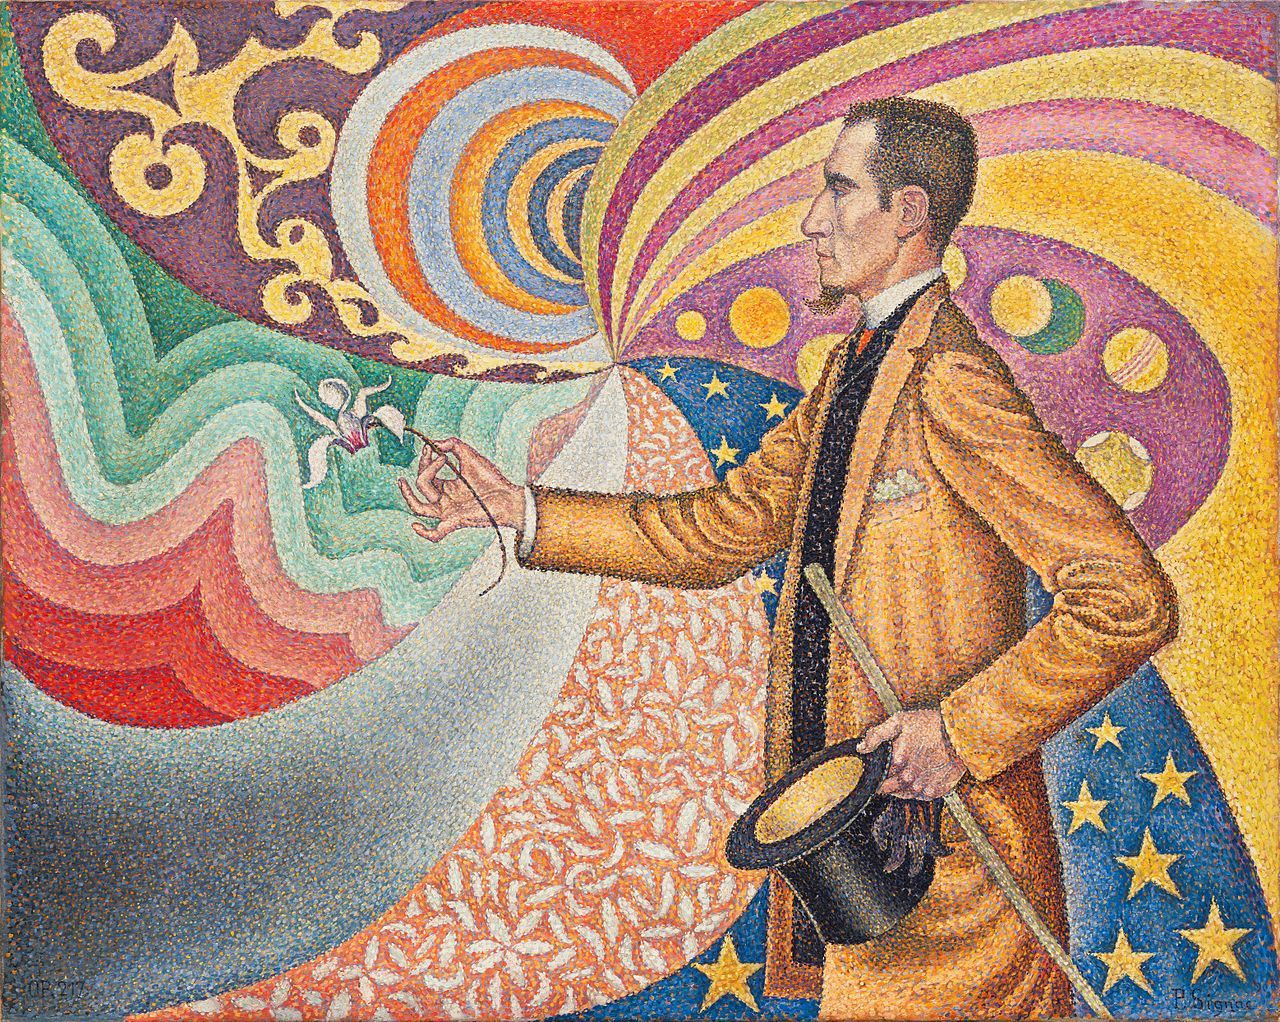 Paul Signac, Portrait de Félix Fénéon, 1890, Museum of Modern Art, New York City.